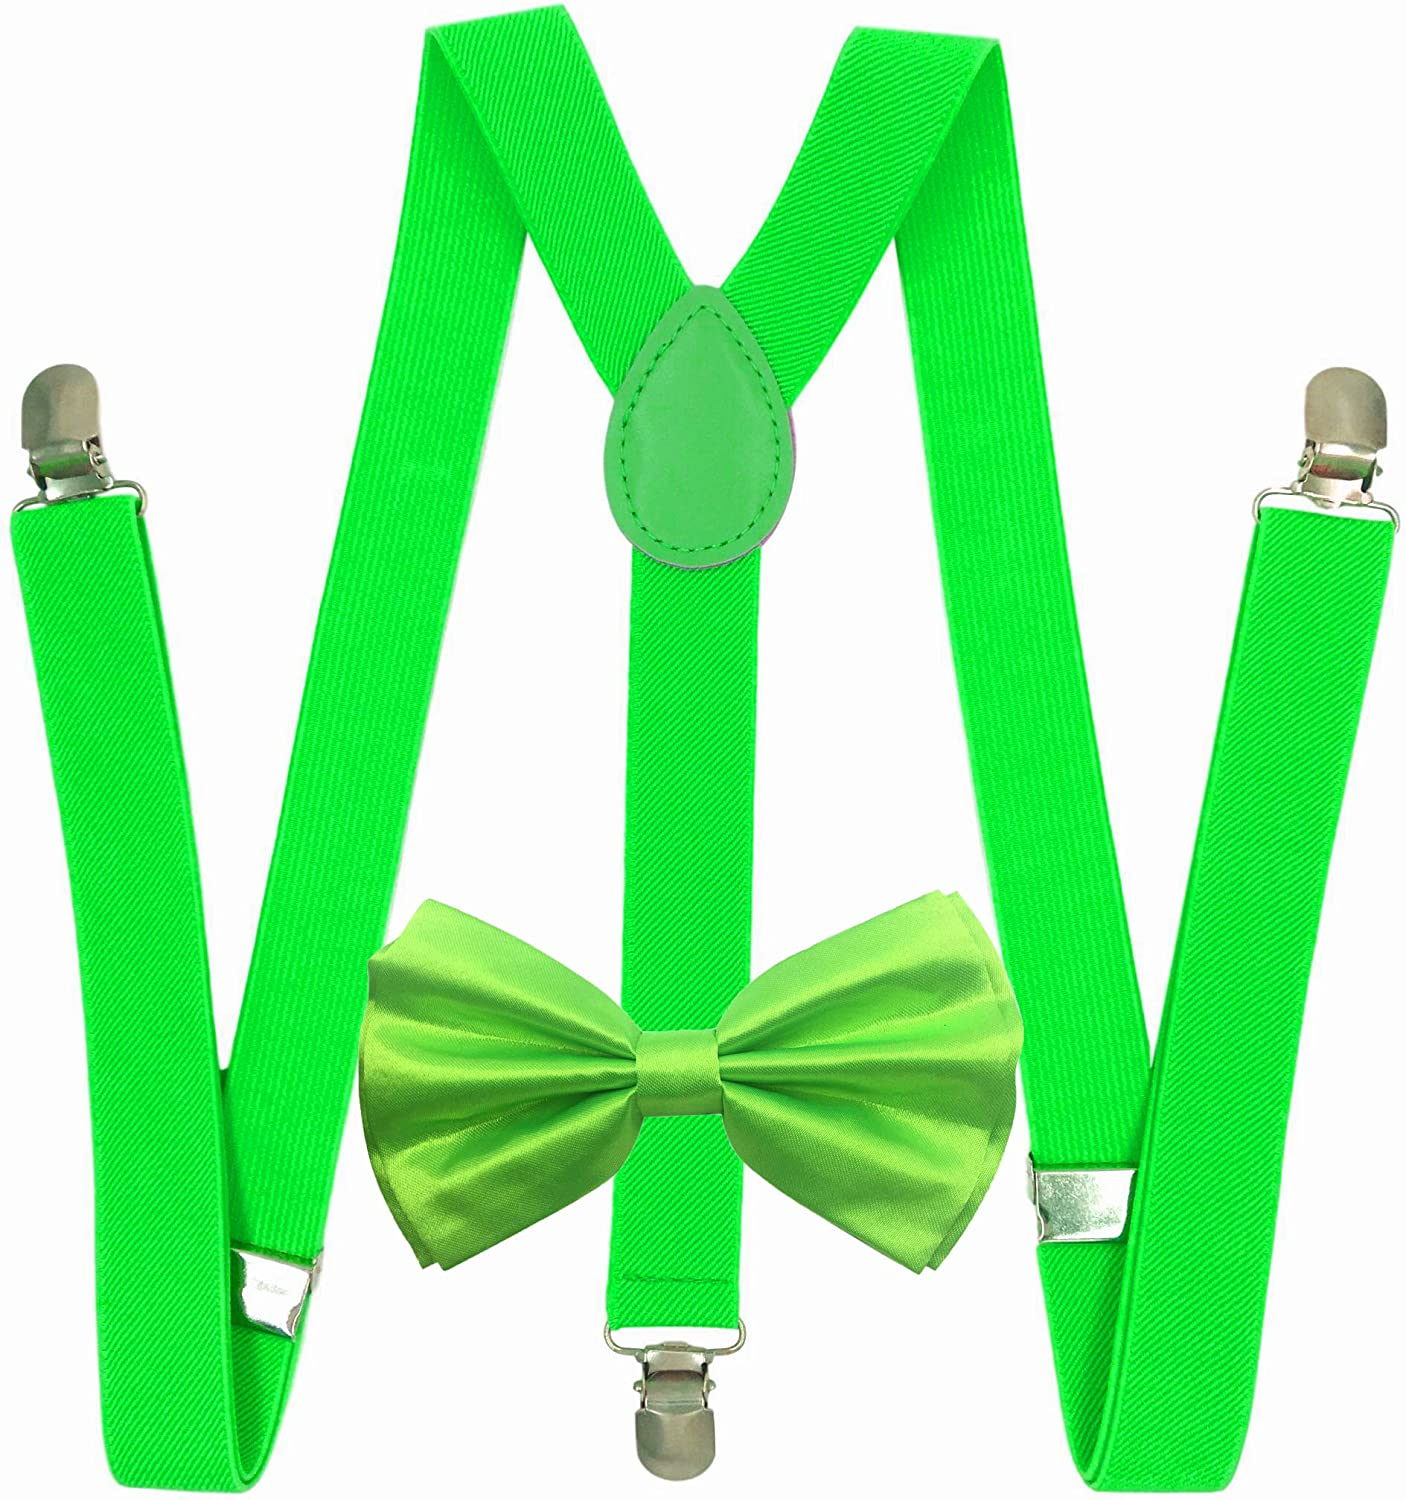 New Suspender Bow Tie Matching Colors Adults Unisex Formal - Halloween - Neon Green Combo